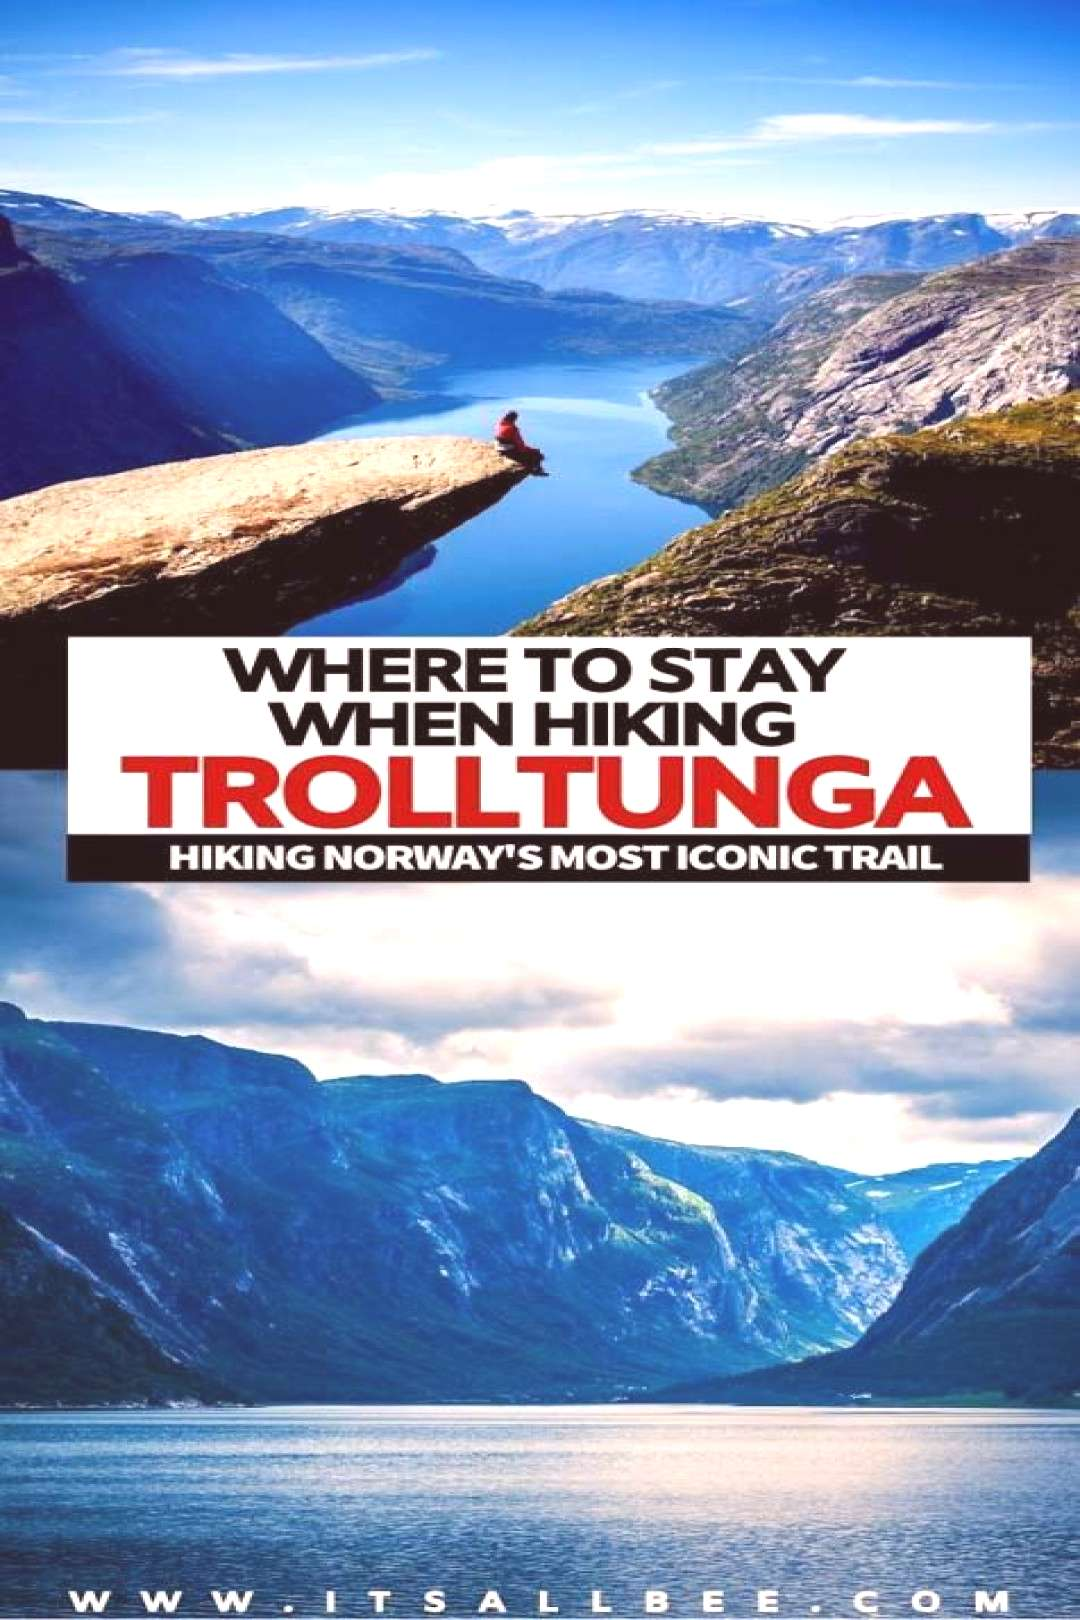 Where To Stay Near Trolltunga - Best Places To Stay In Odda Hordaland Hiking Trolltunga? Get the lo